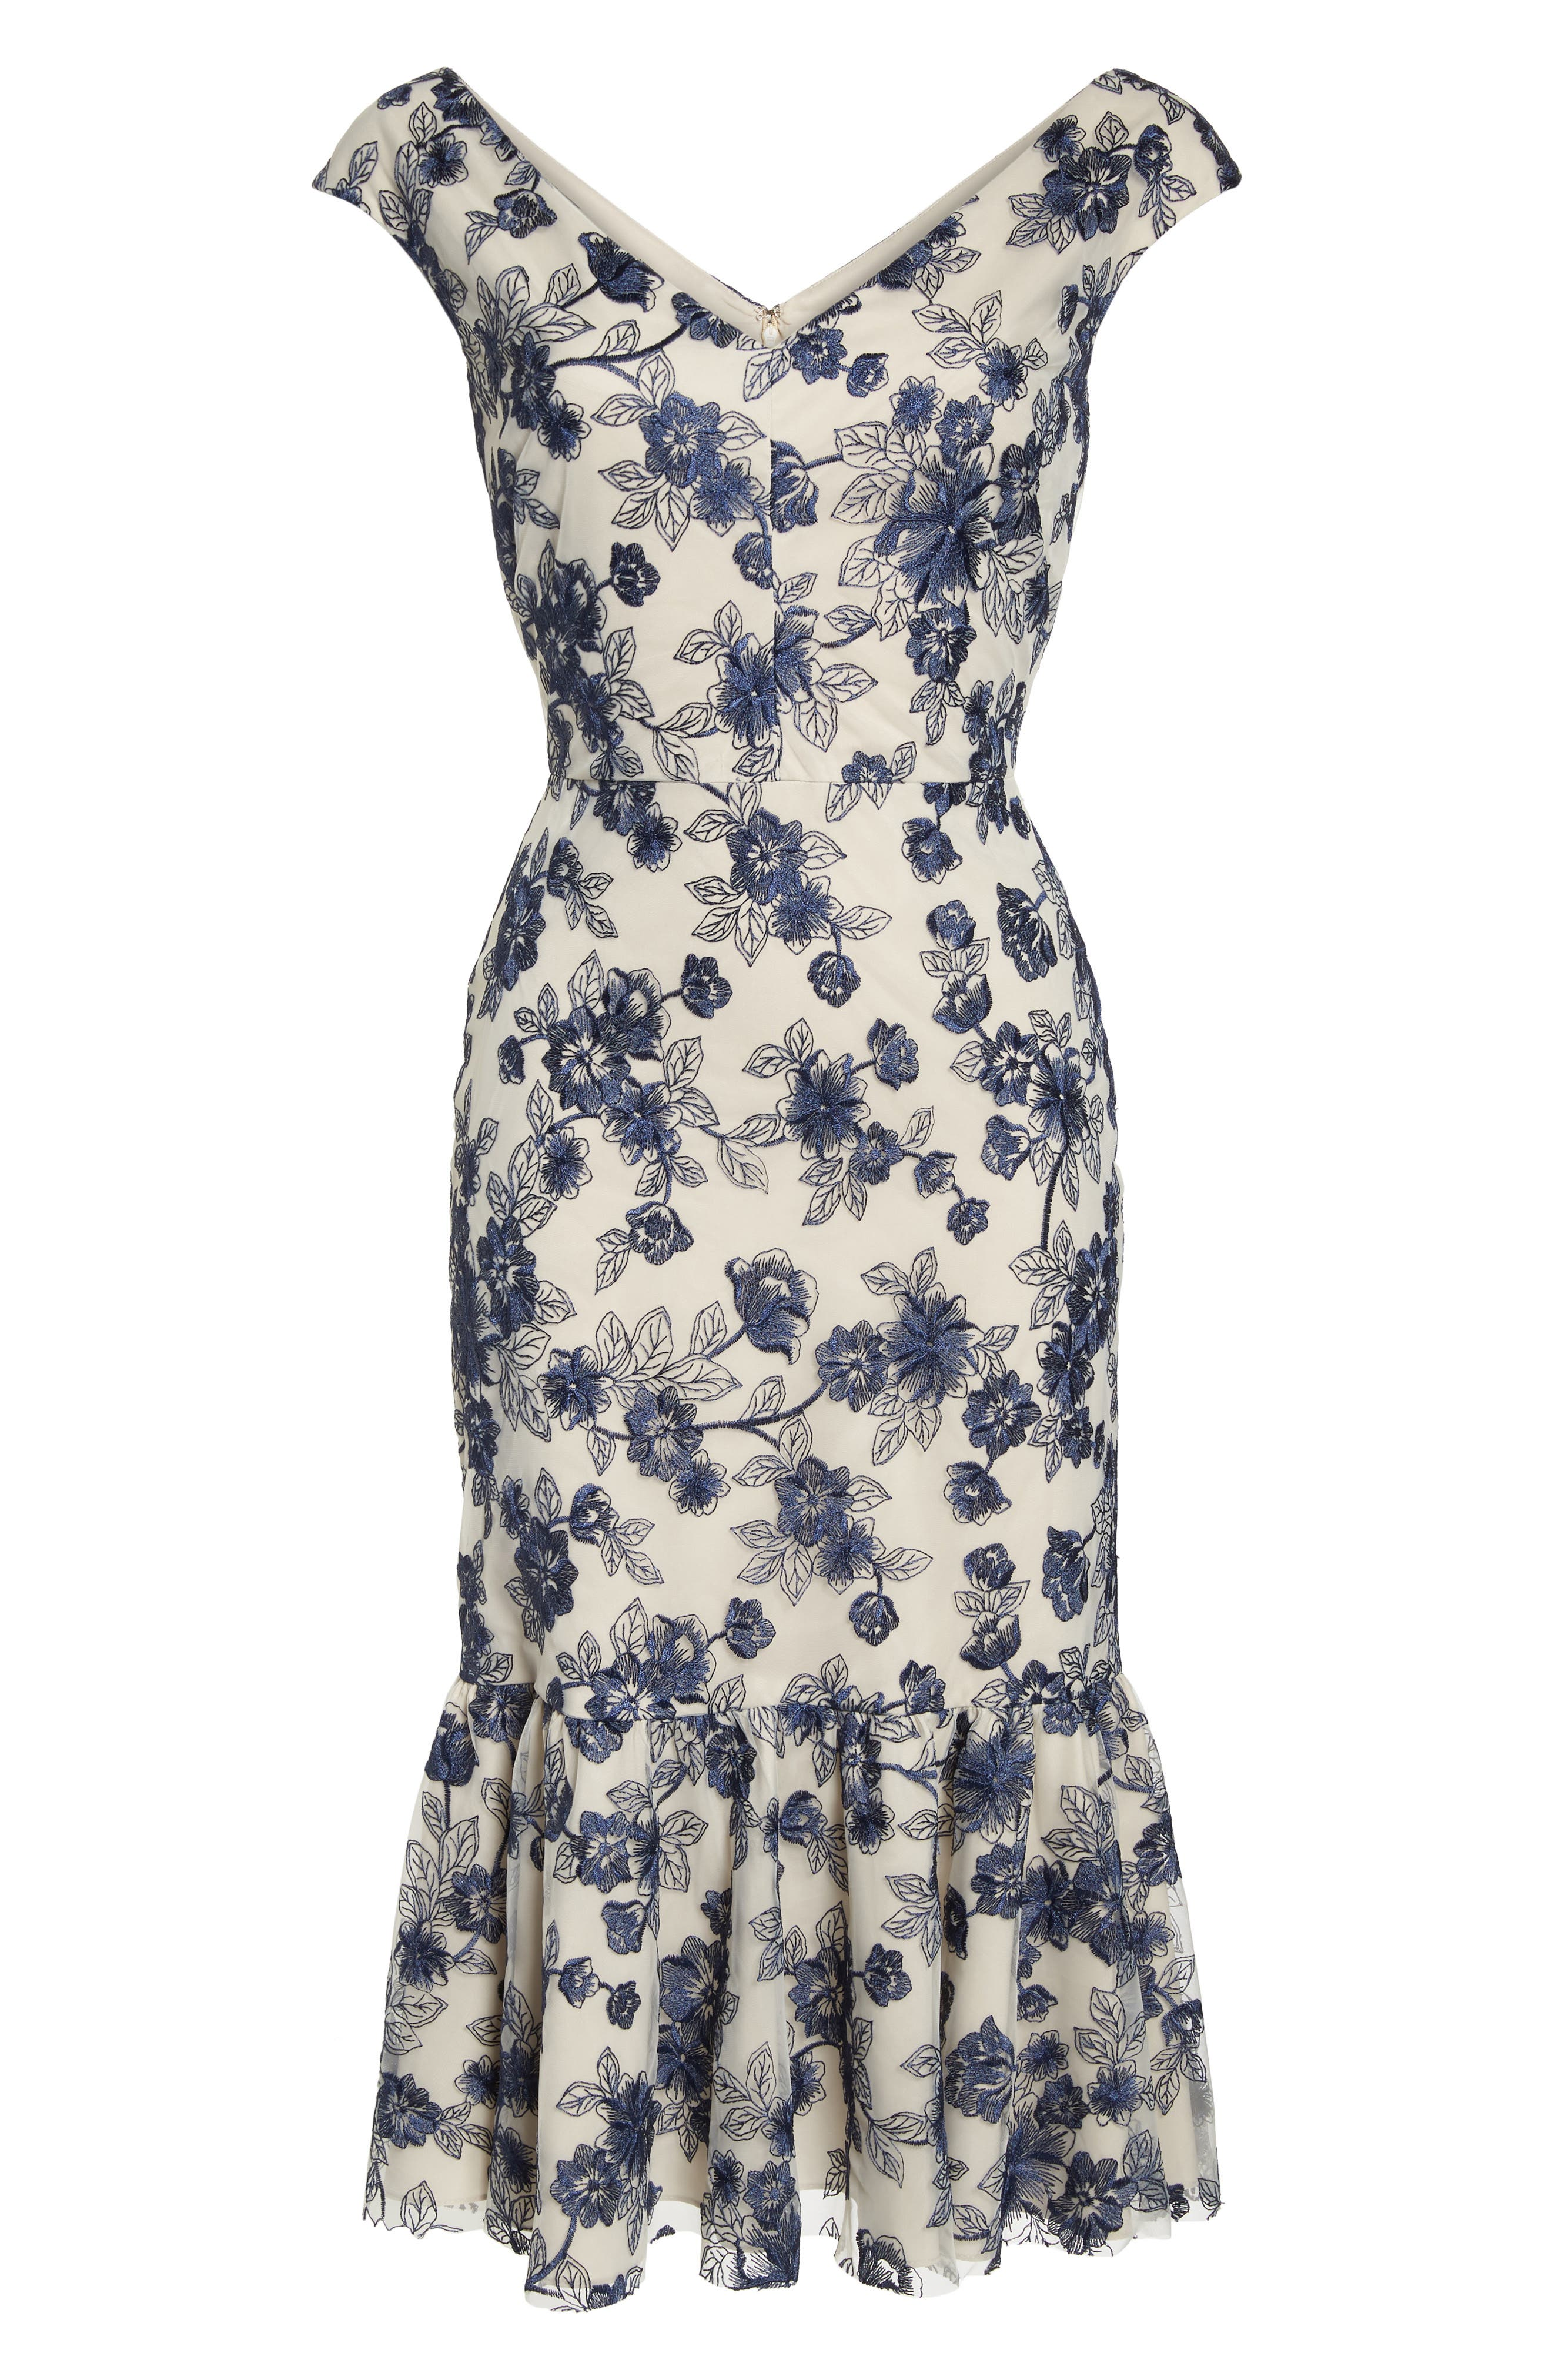 Rosemary Floral Embroidered Midi Dress,                             Alternate thumbnail 7, color,                             419